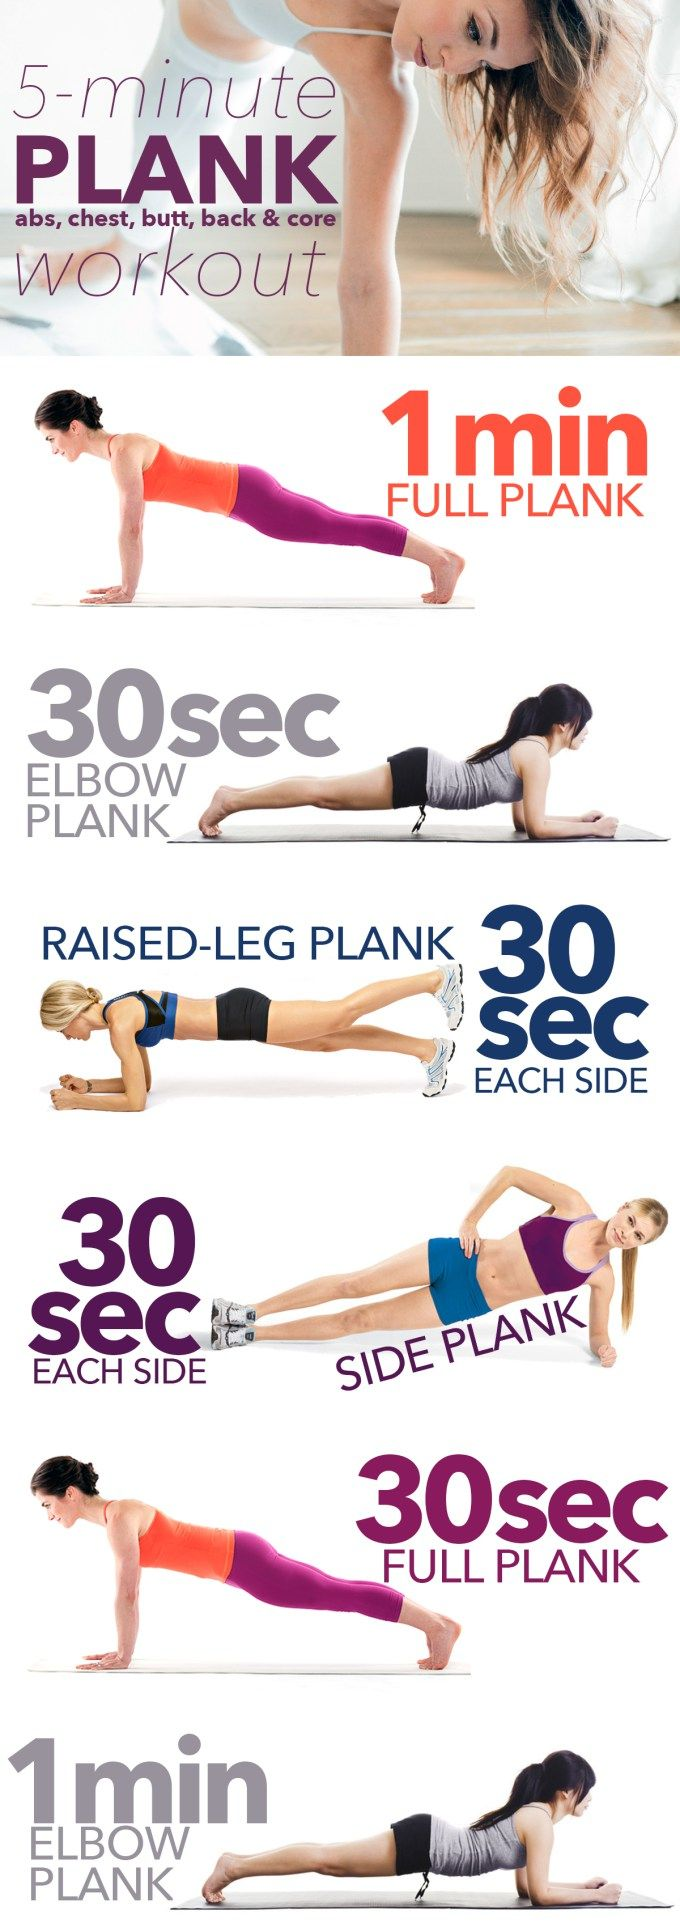 5-minute plank workout infographic